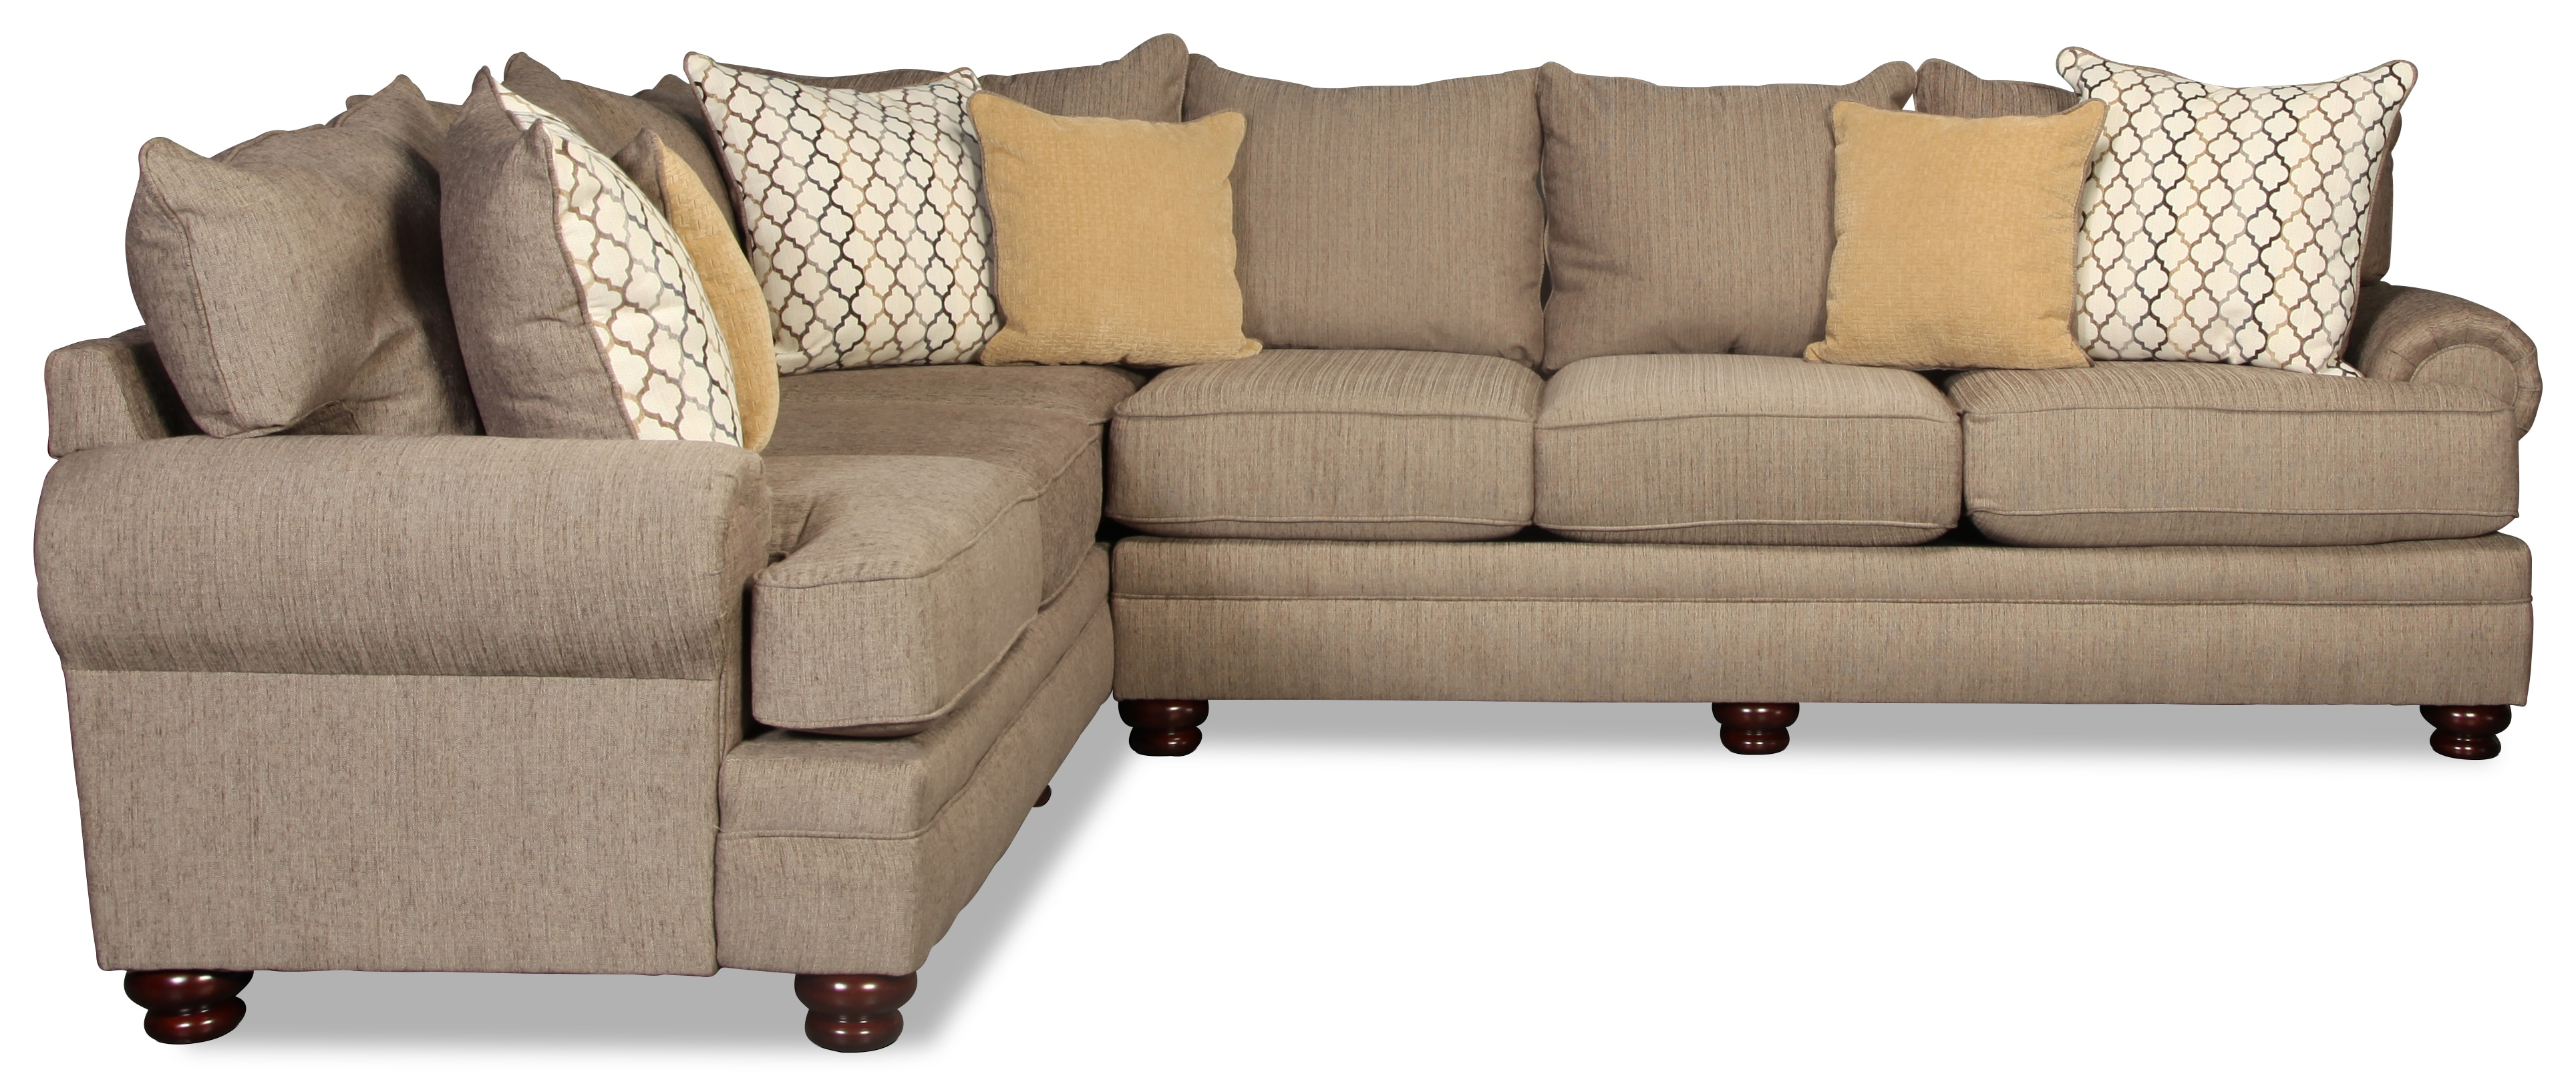 Draper 2pc Sectional